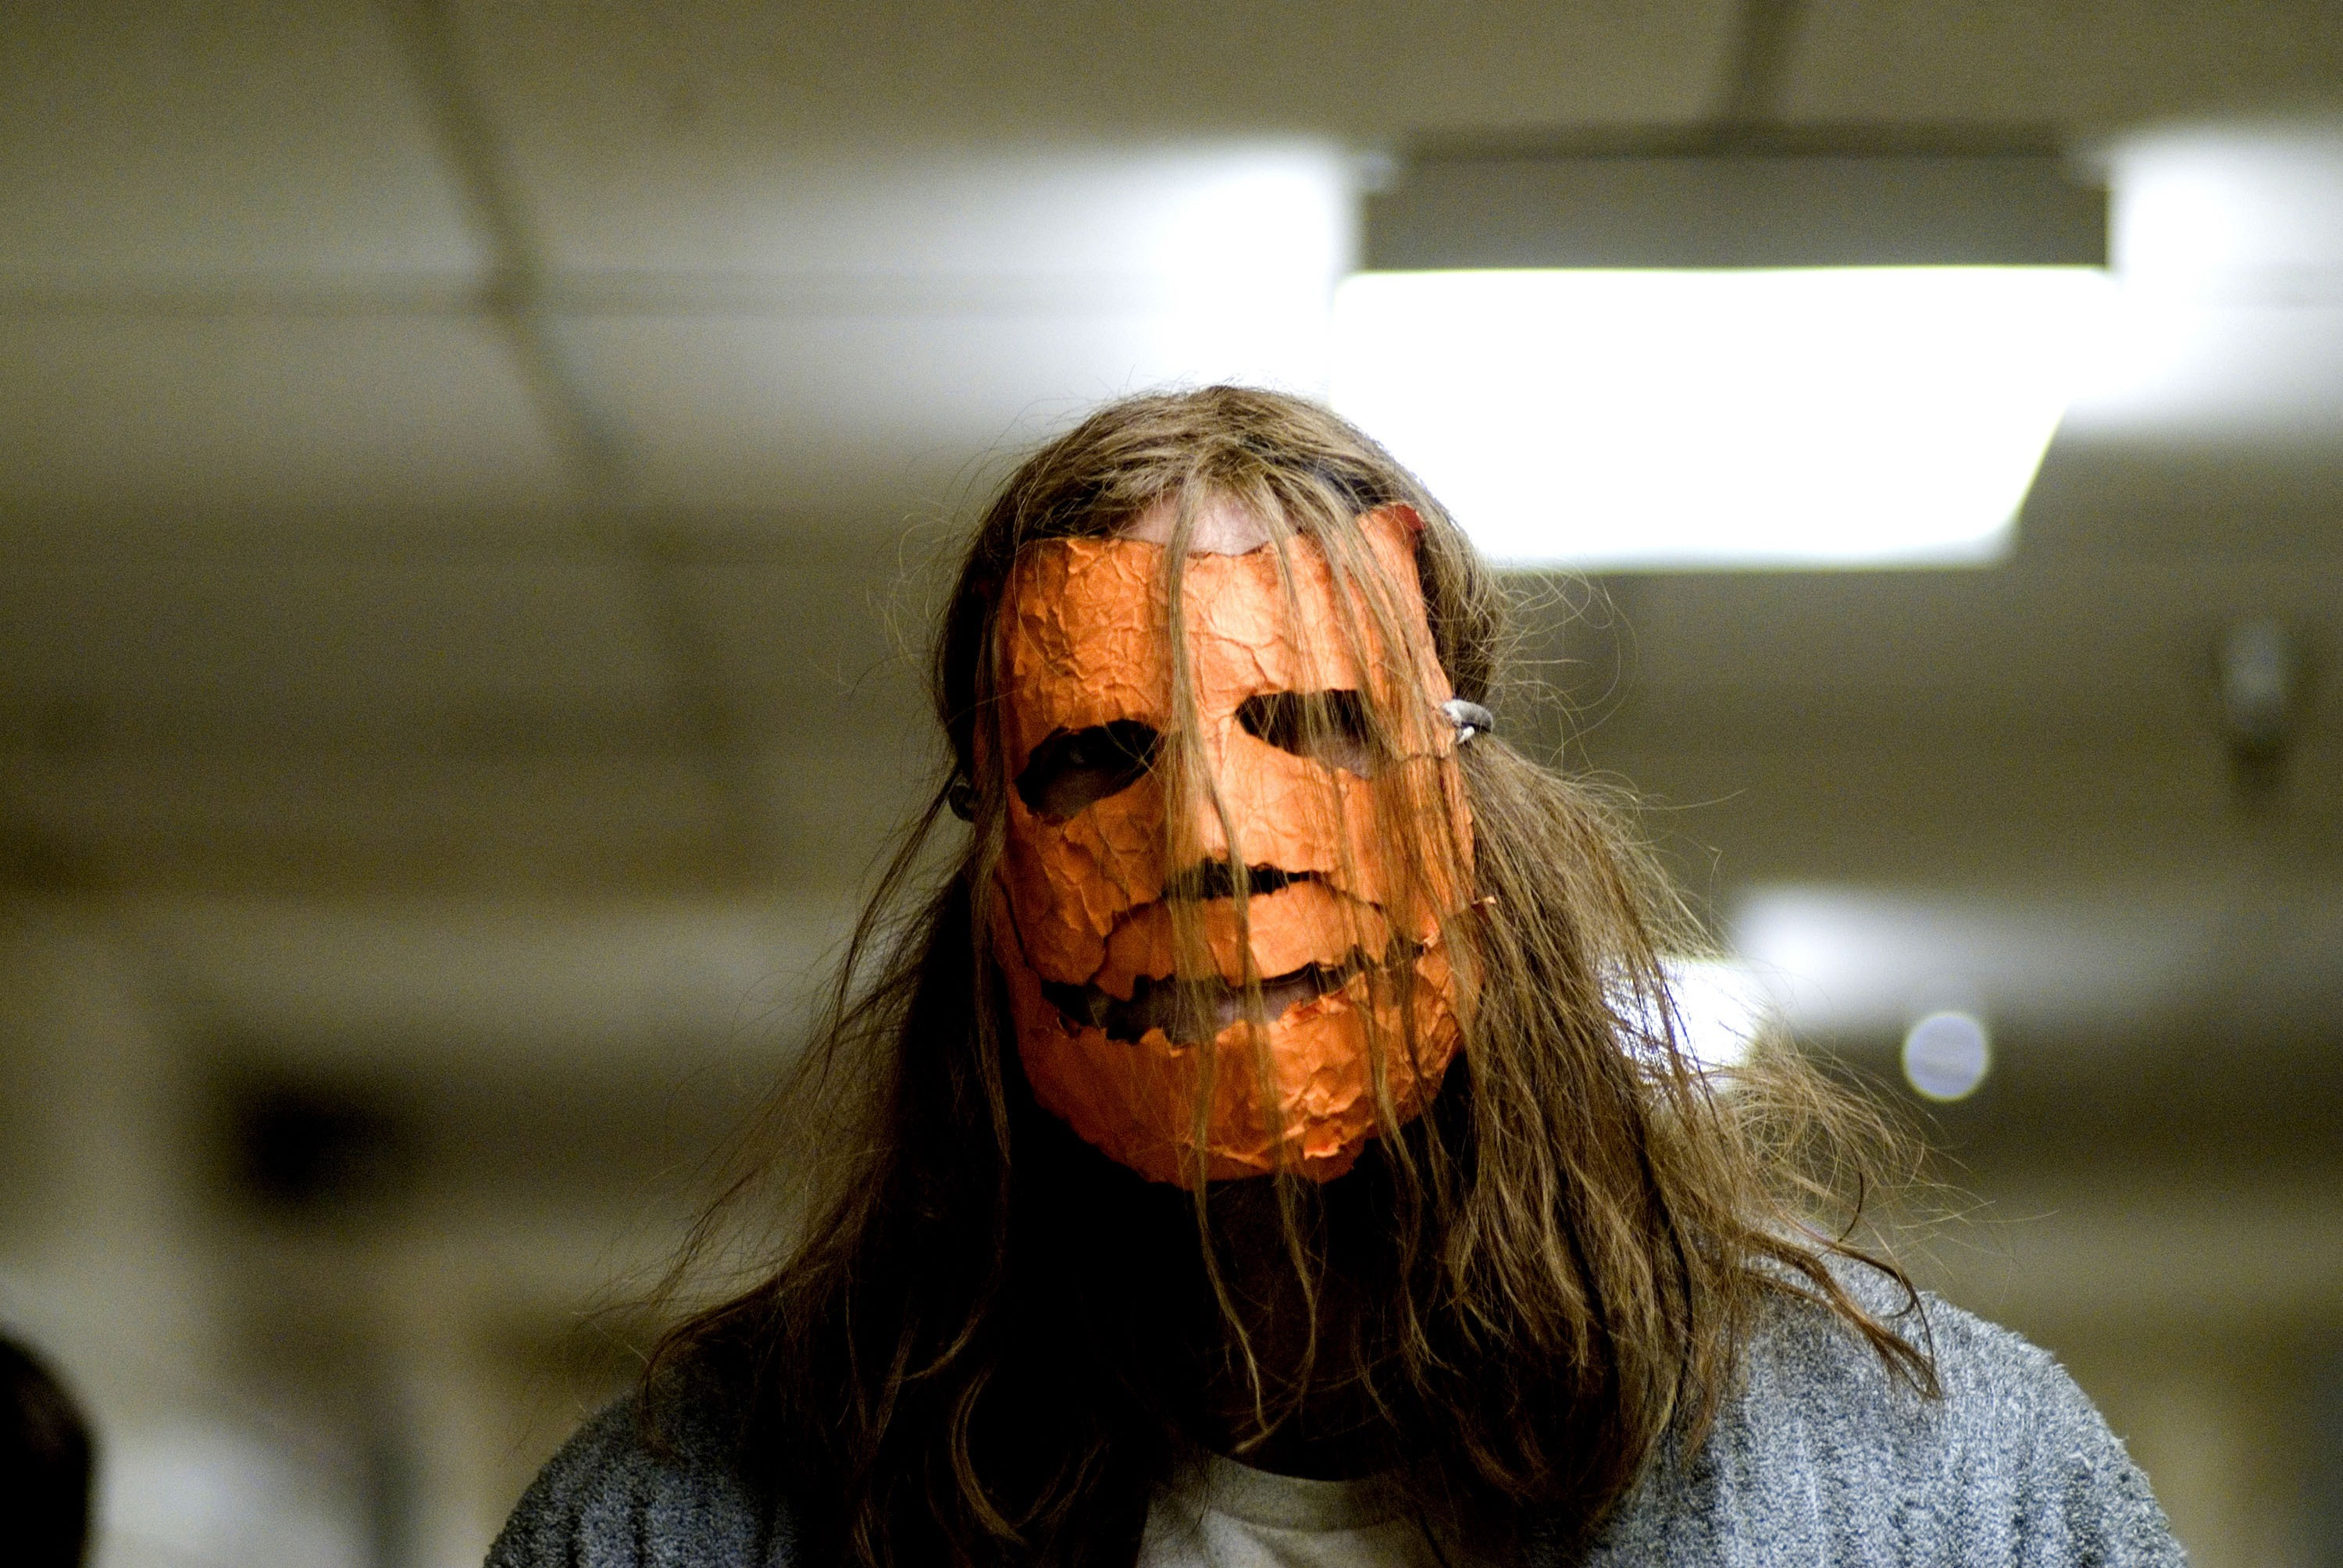 Rob Zombie Halloween Clown Mask.Every Halloween Film Ranked From John Carpenter To Rob